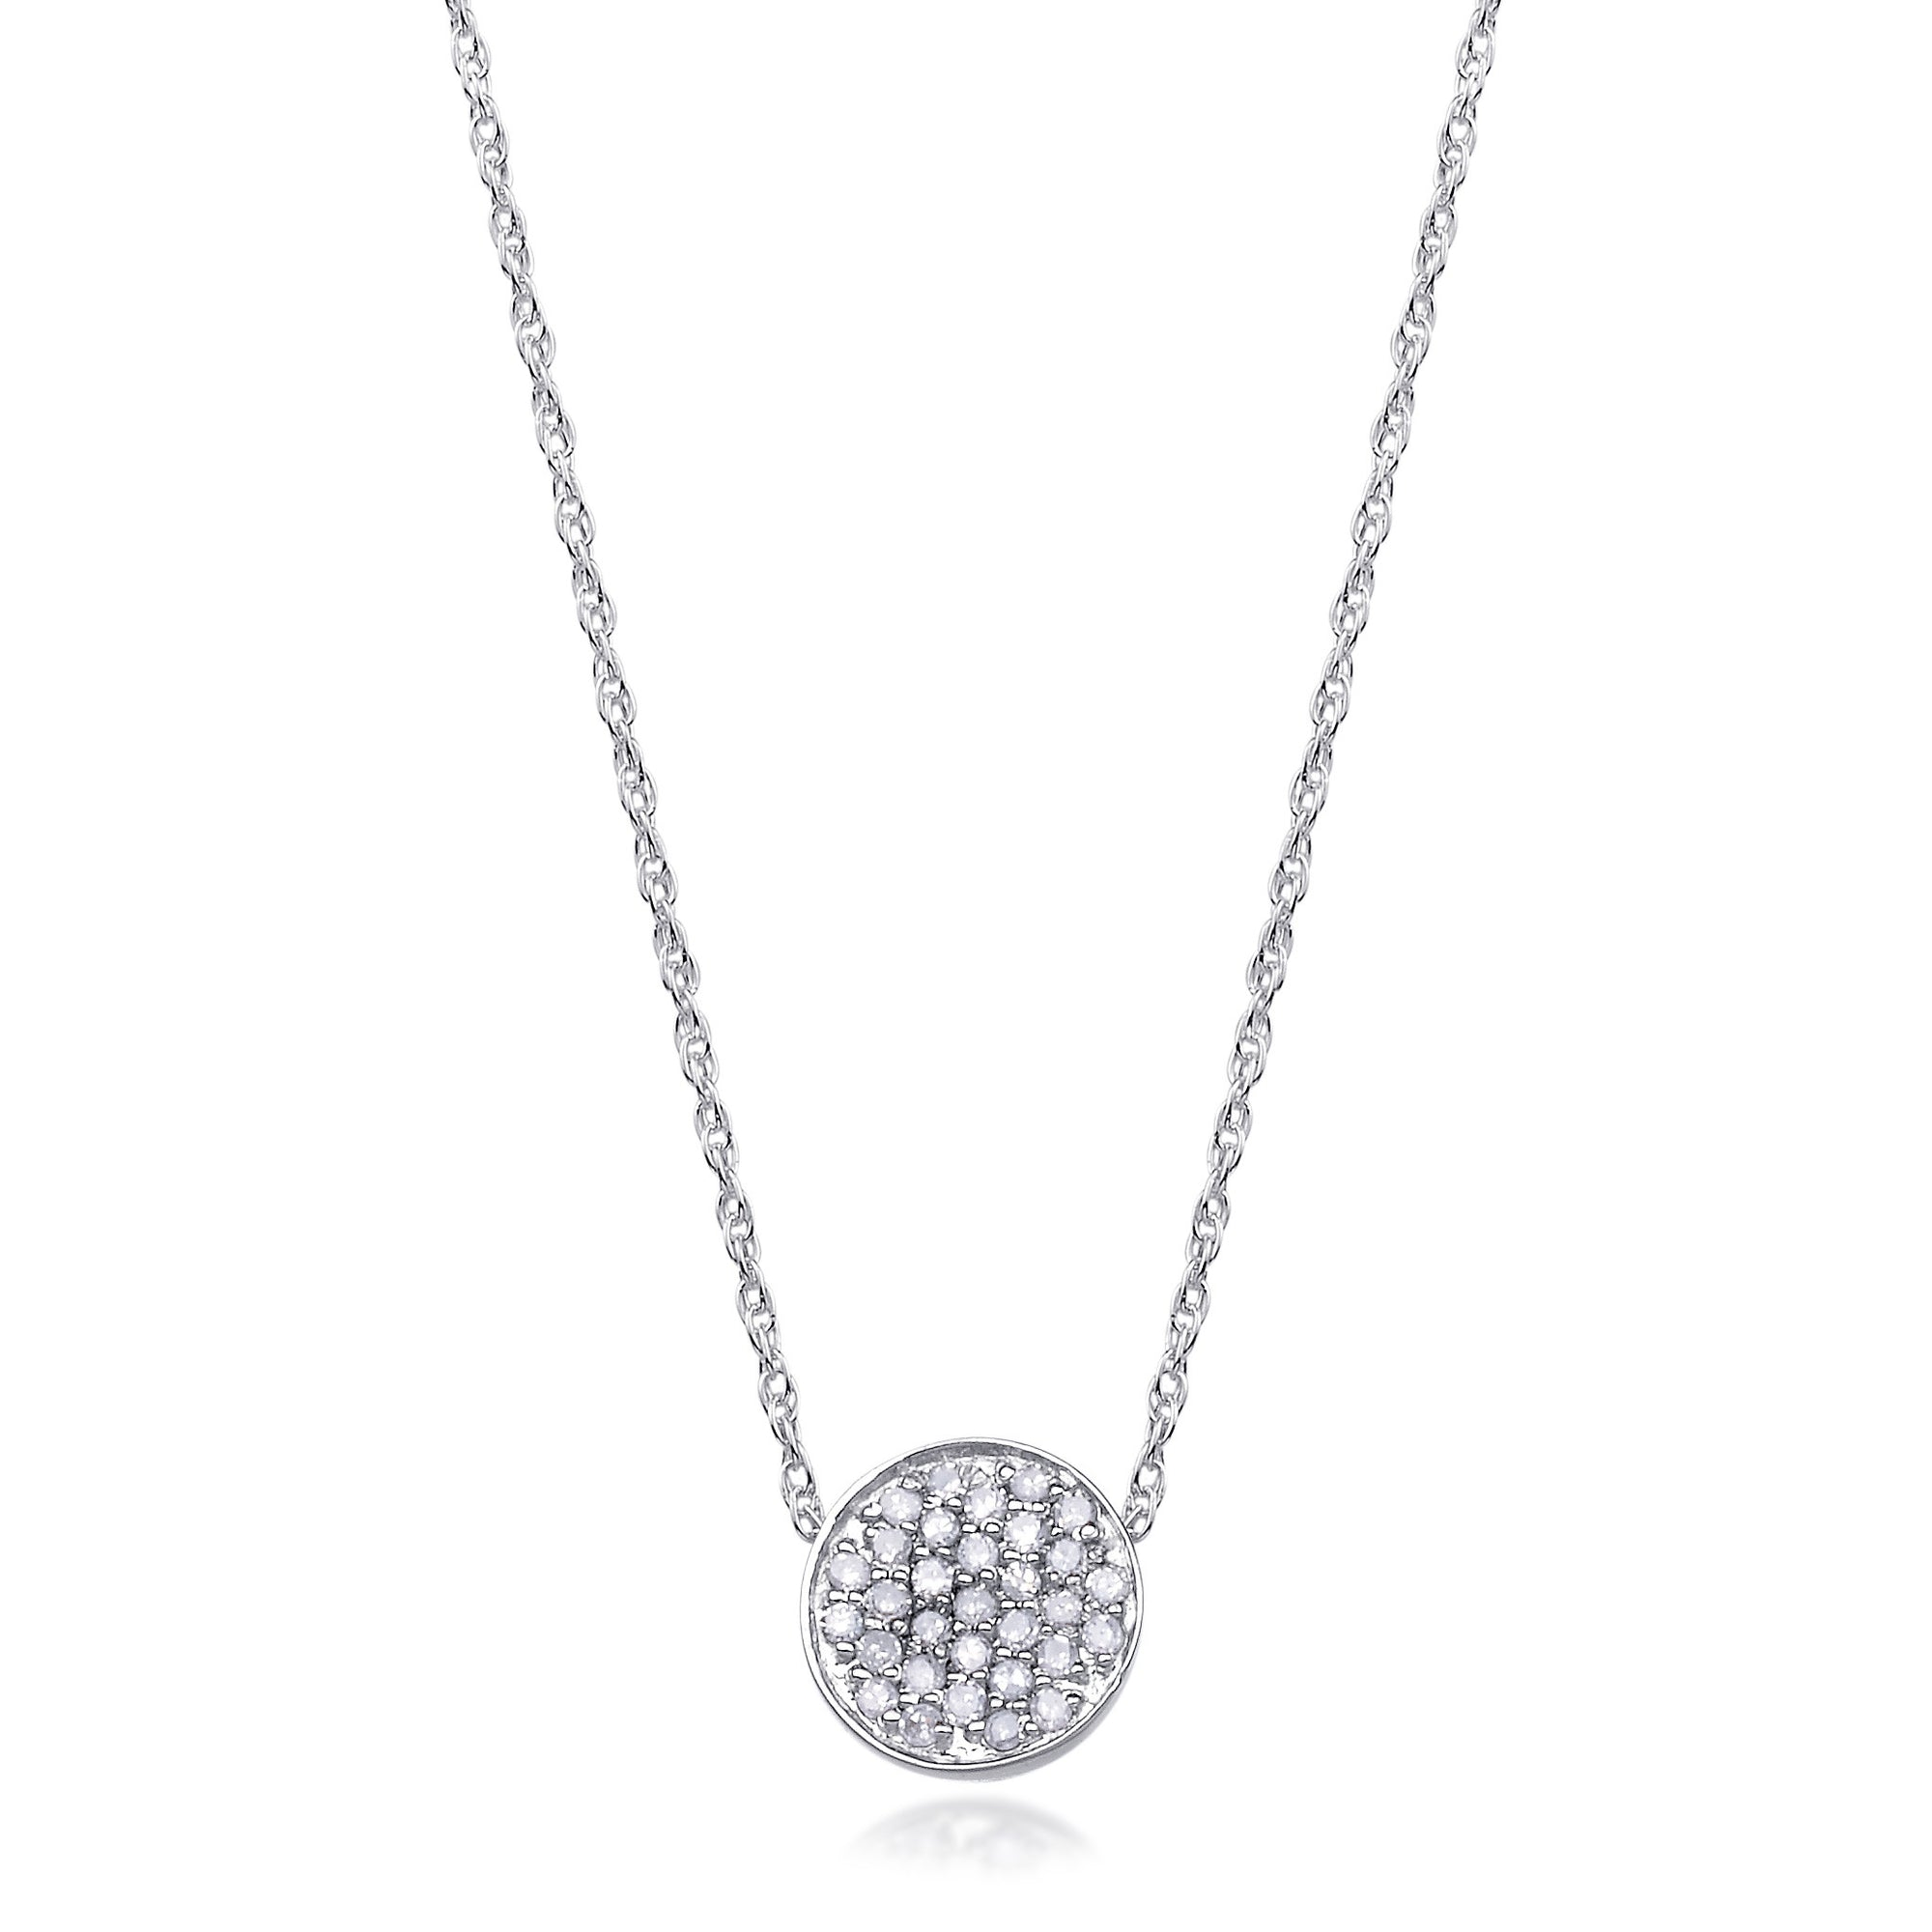 Bling diamond pave small disc pendant necklace in 14k white gold diamond pave disc pendant necklace in white gold aloadofball Image collections